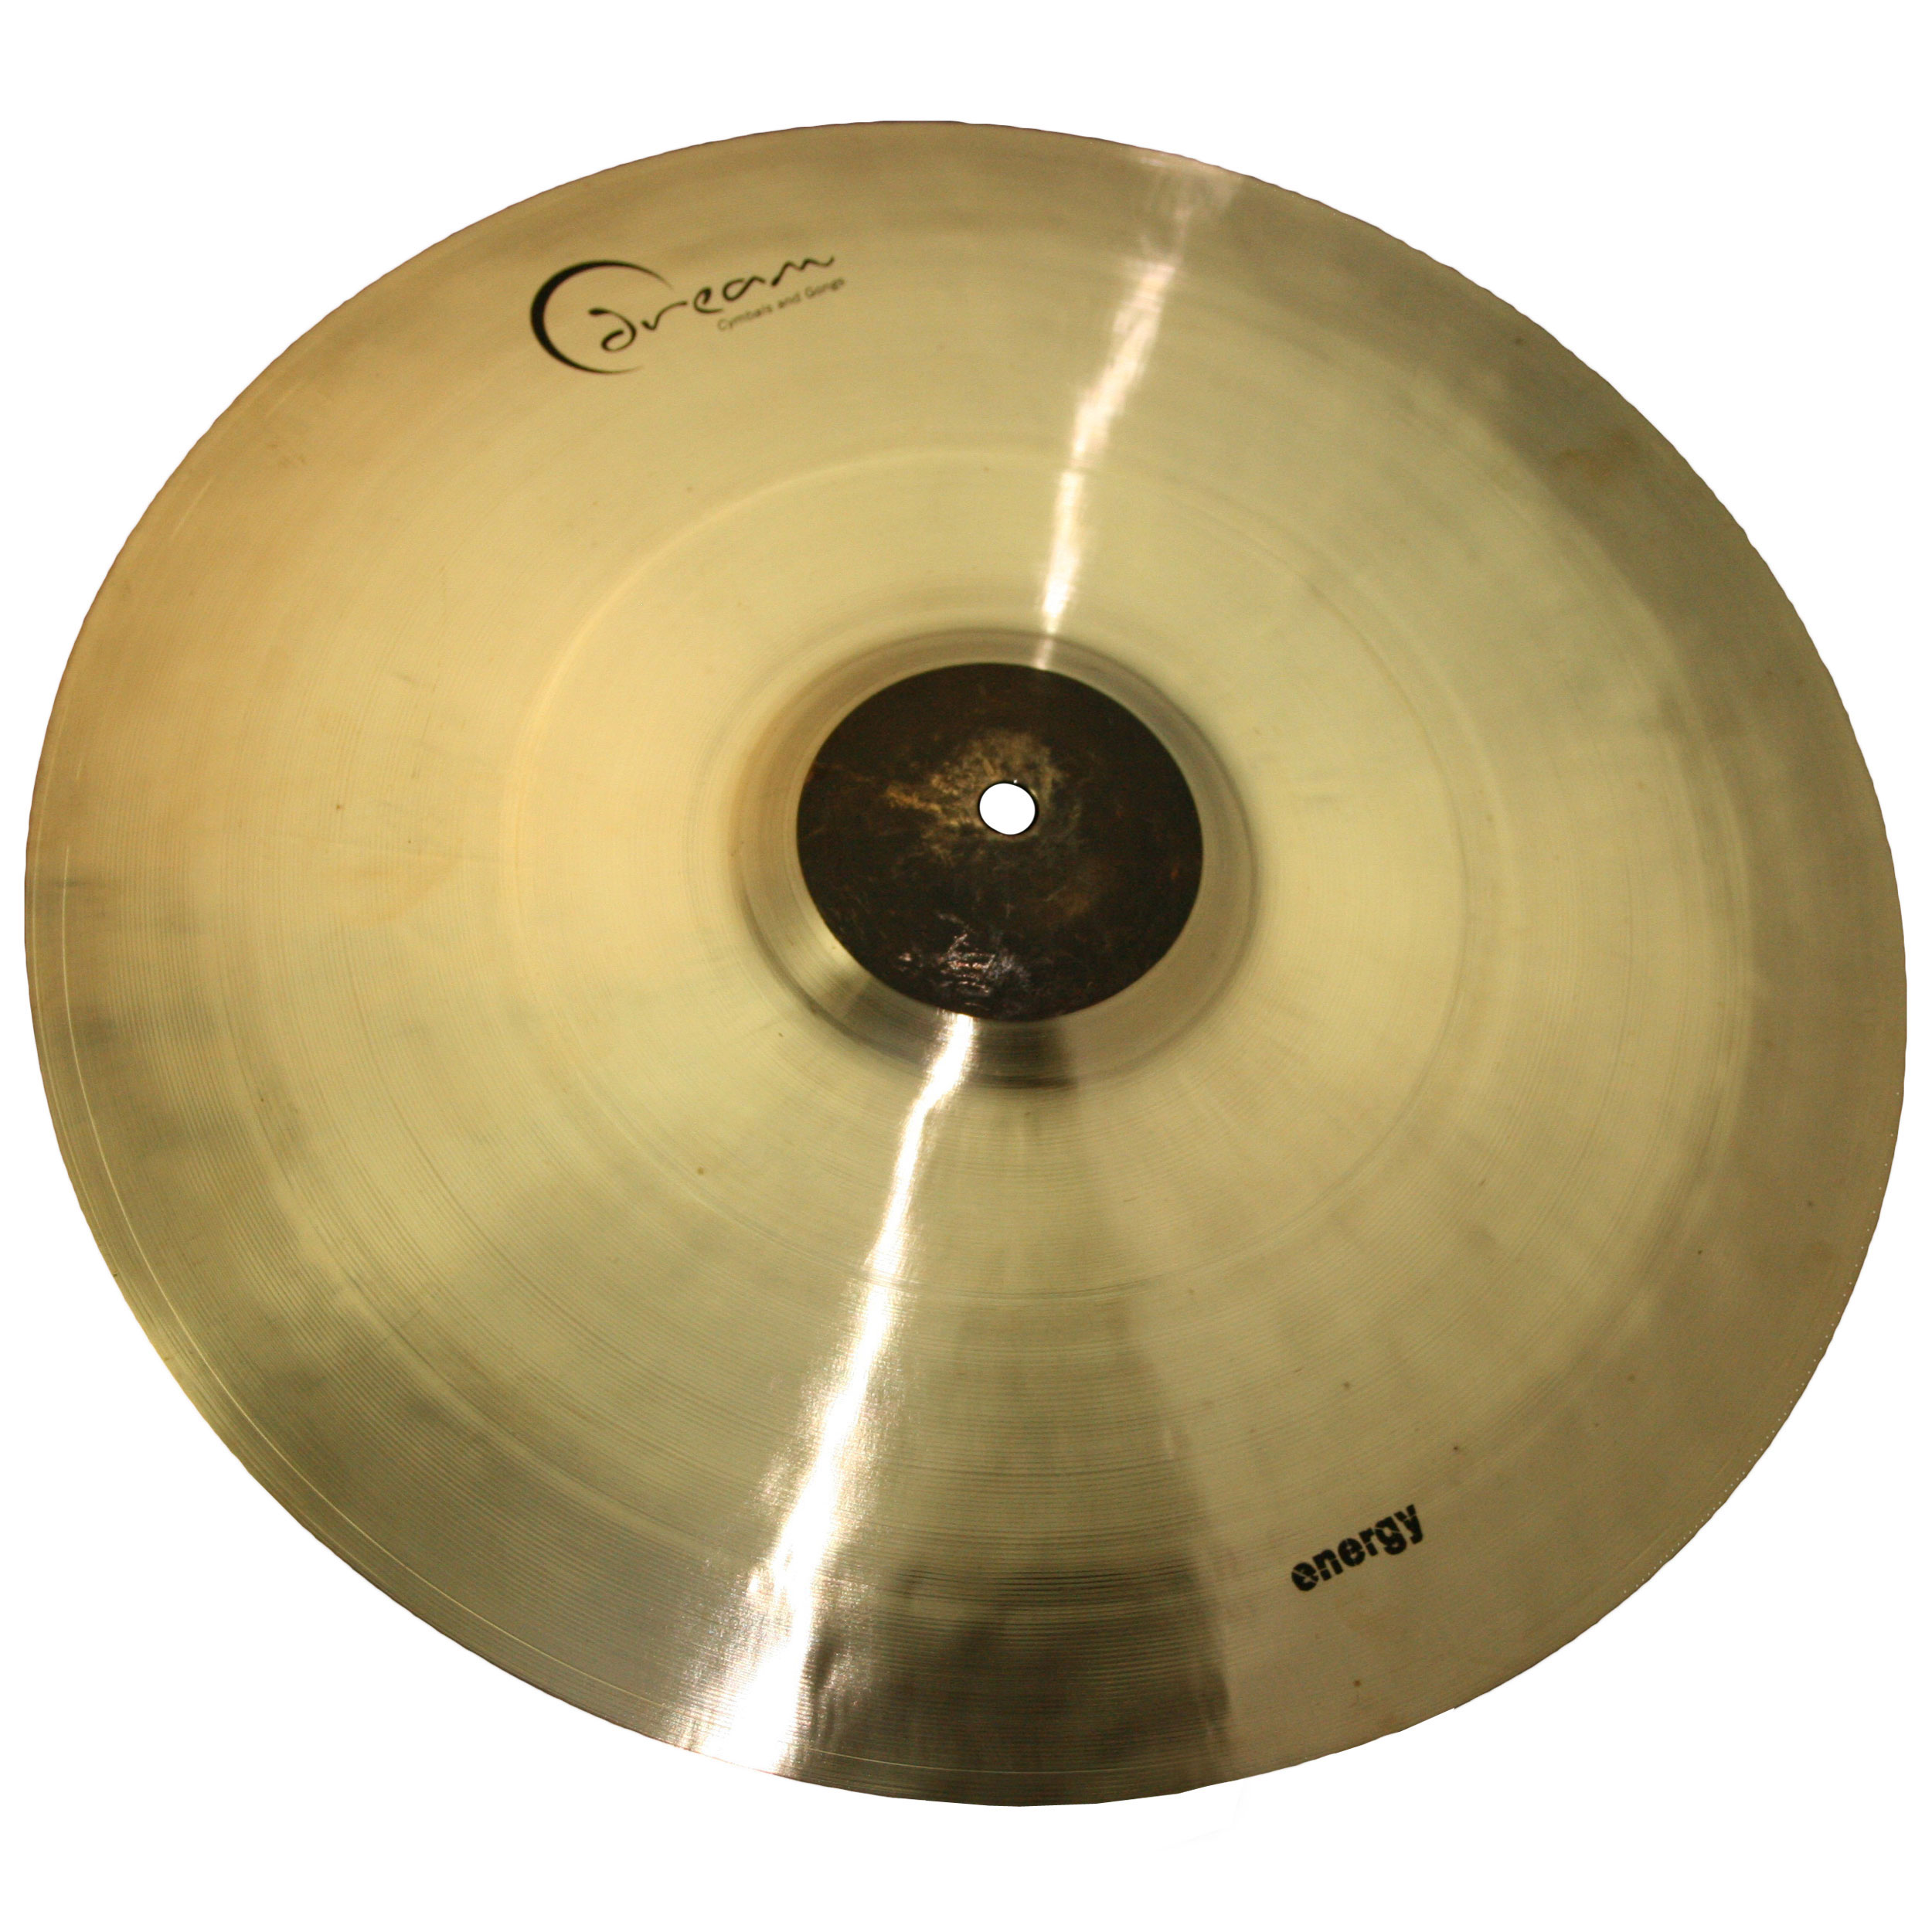 "Dream 18"" Energy Crash Cymbal"